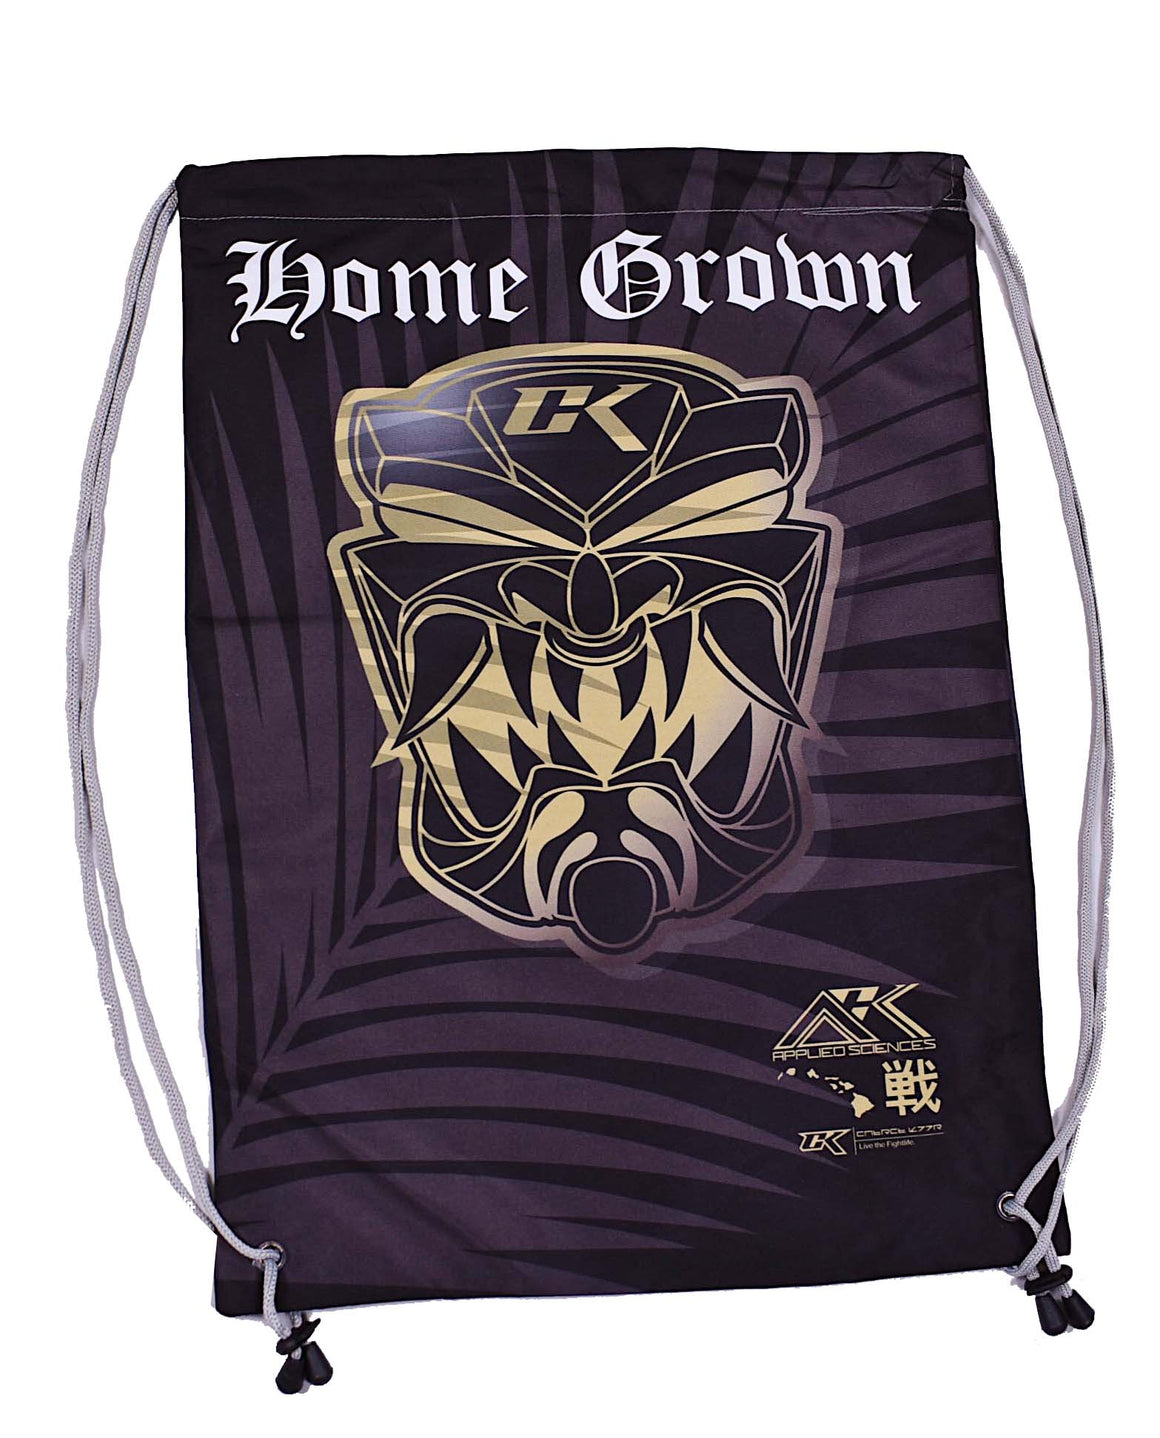 CK Home Grown Drawstring Bag